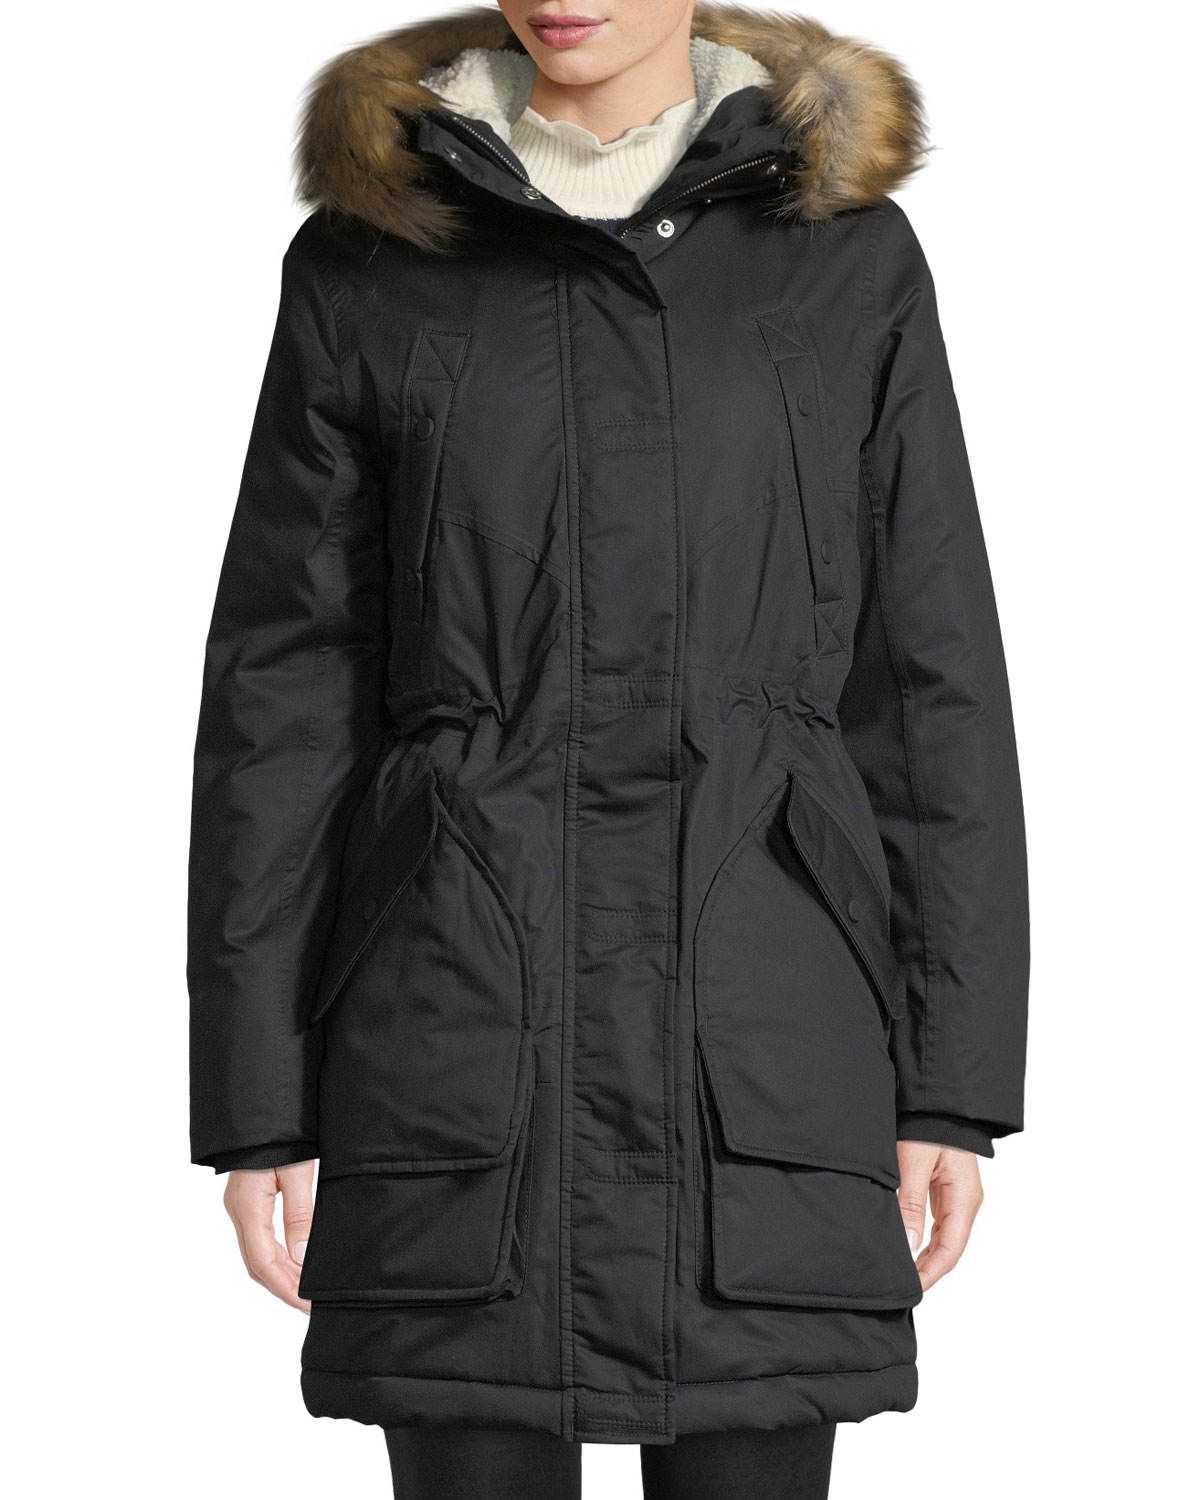 Hunter INSULATED PARKA W/ DETACHABLE FAUX FUR TRIM